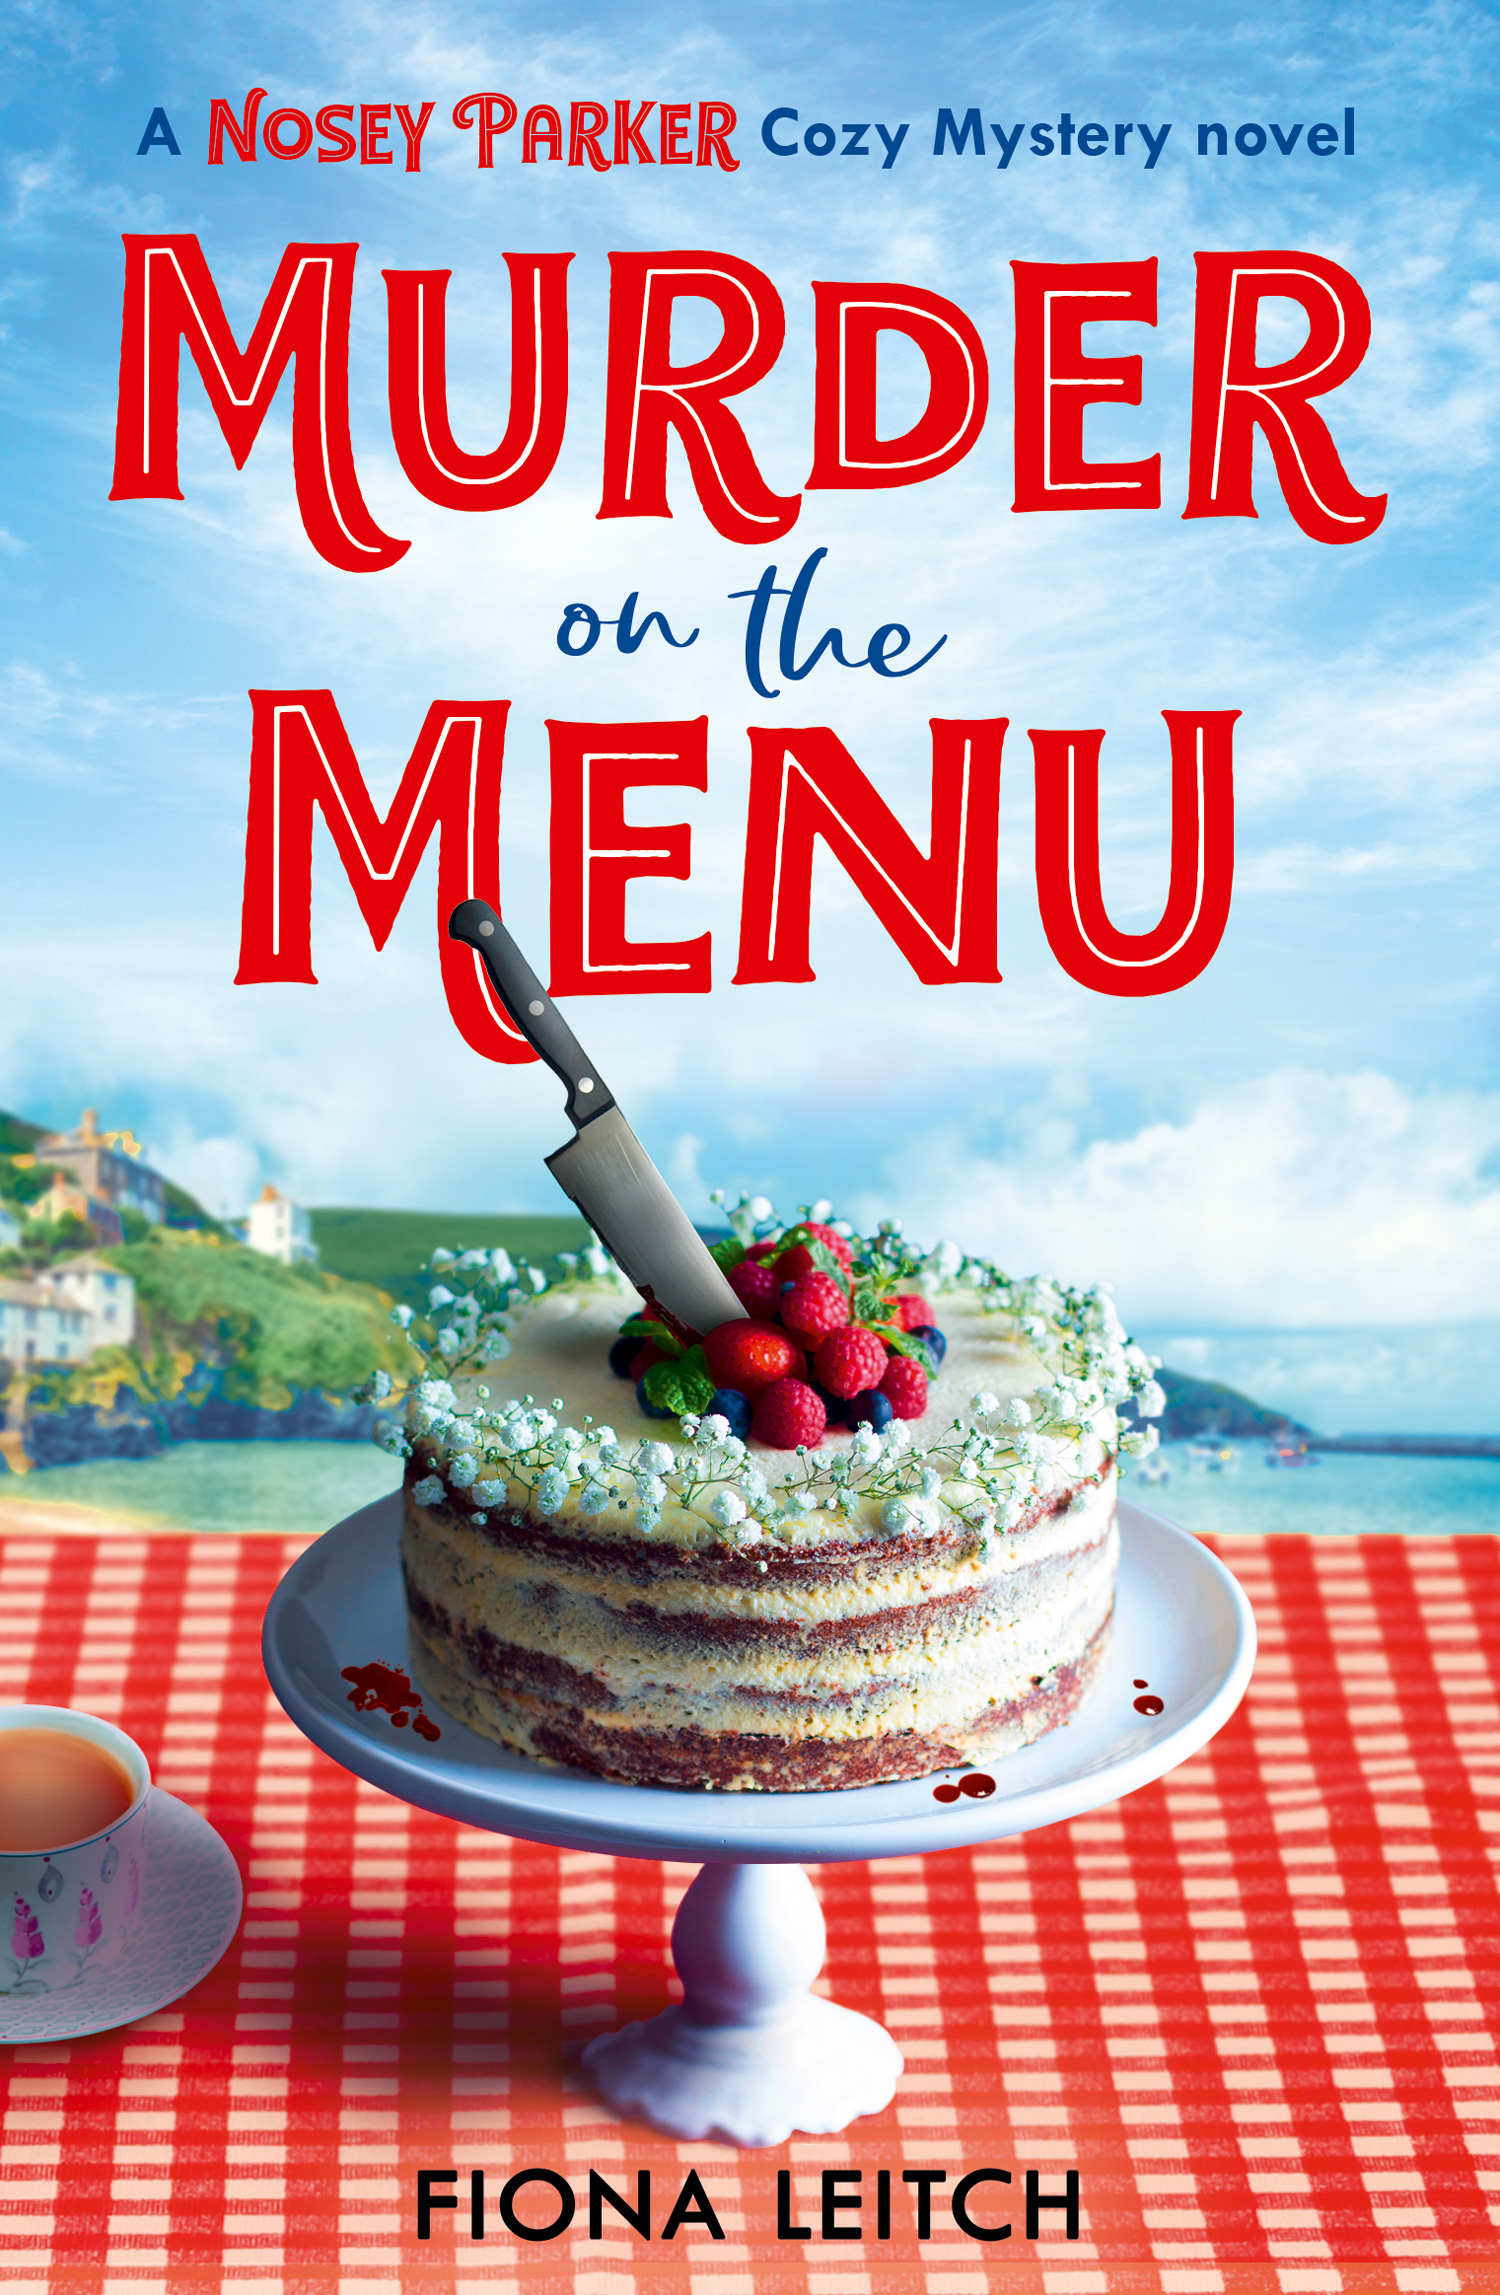 Murder on the Menu by Fiona Leitch @fkleitch @0neMoreChapter_ #BookReview #PublicationDay #NoseyParker